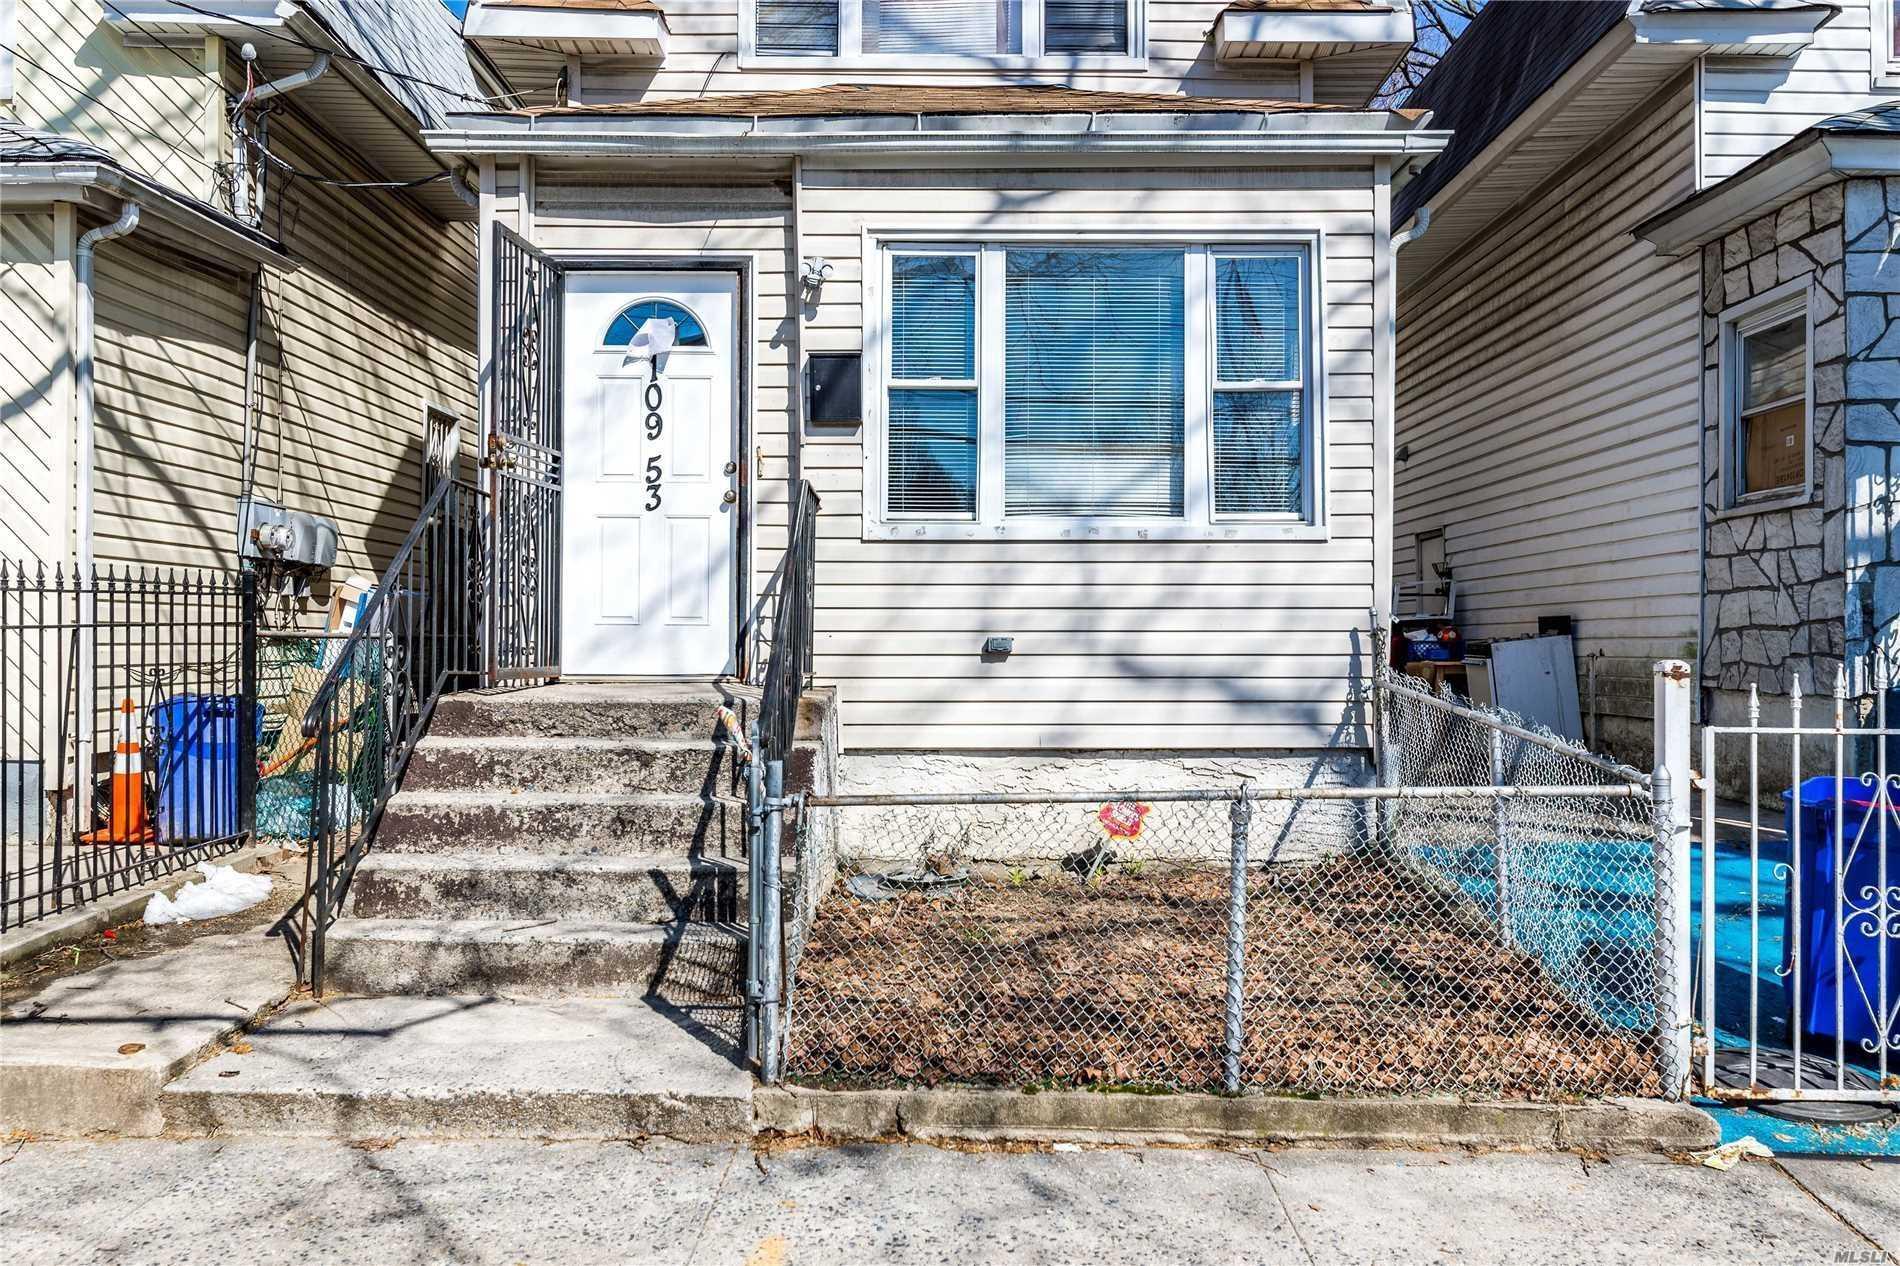 Property for sale at 109-53 Union Hall Street, Jamaica NY 11433, Jamaica,  New York 11433